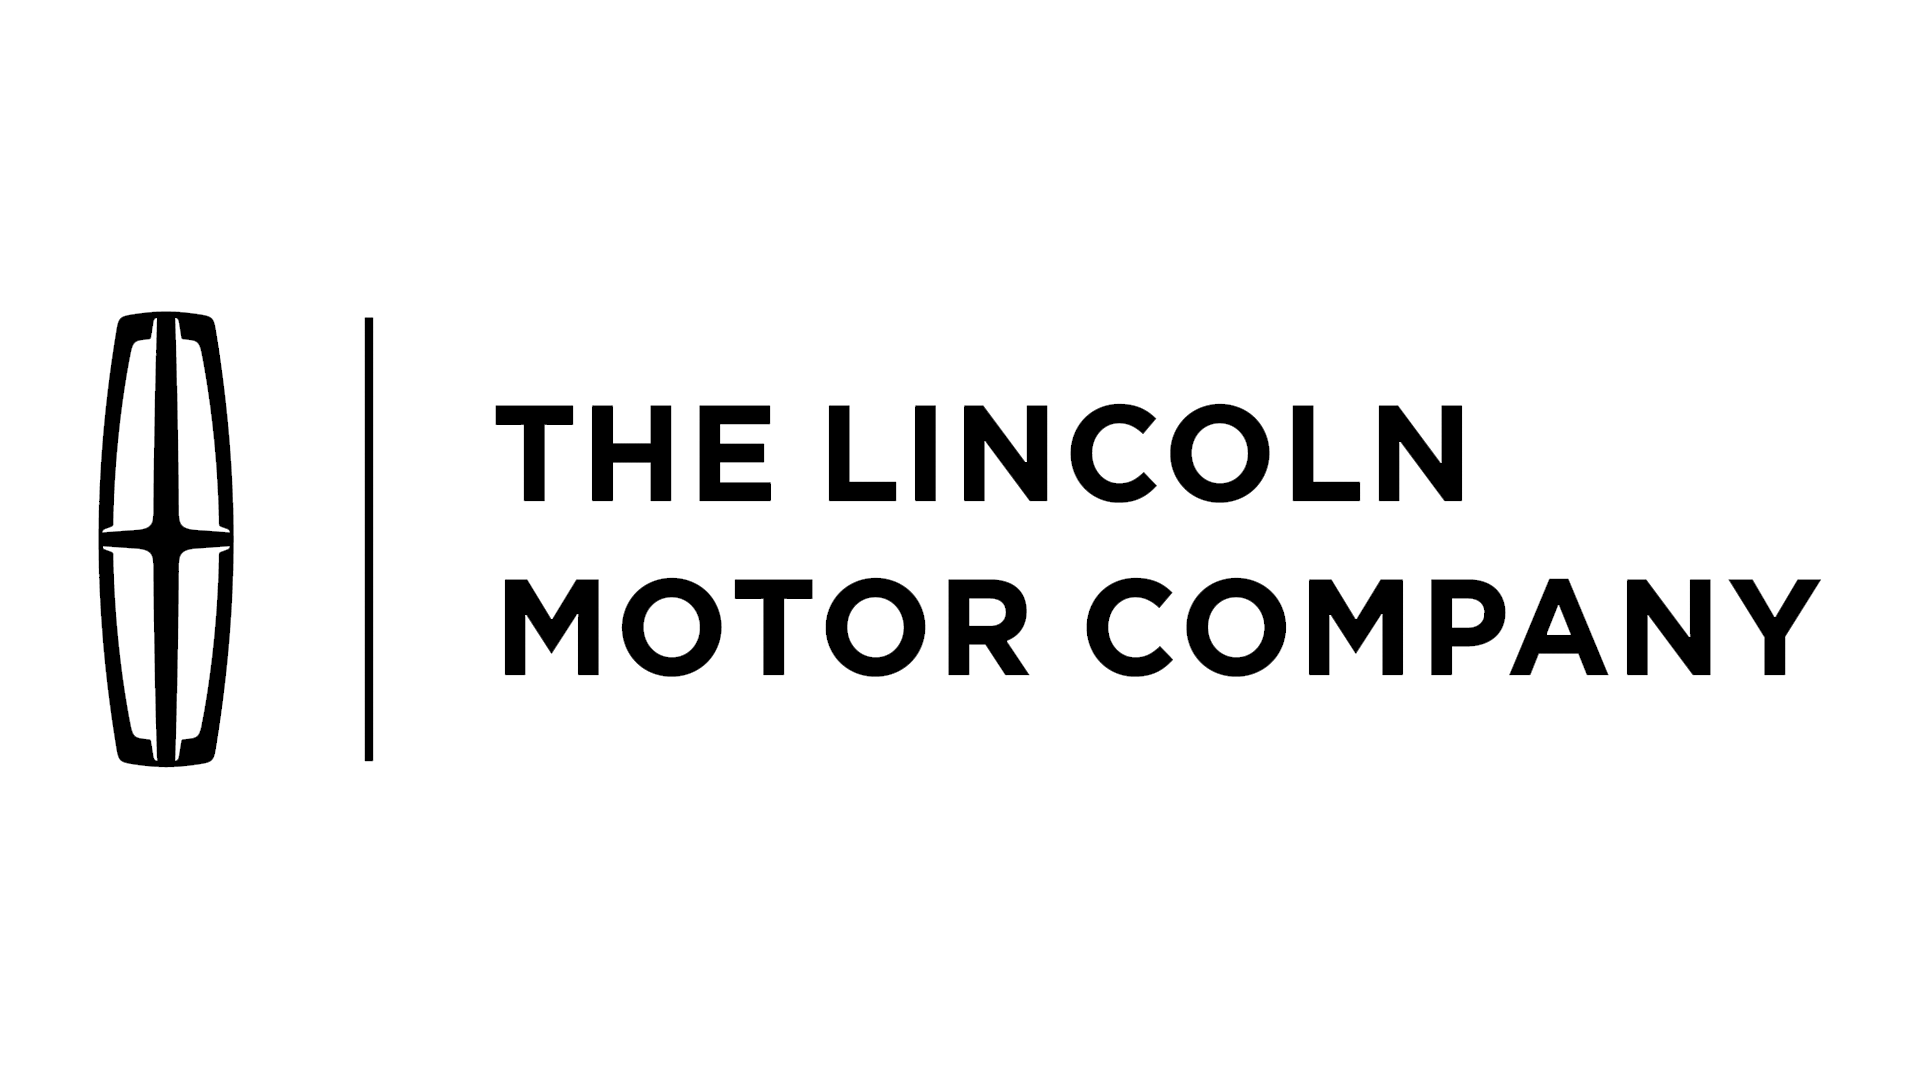 Lincoln-logo-2012-1920x1080.png